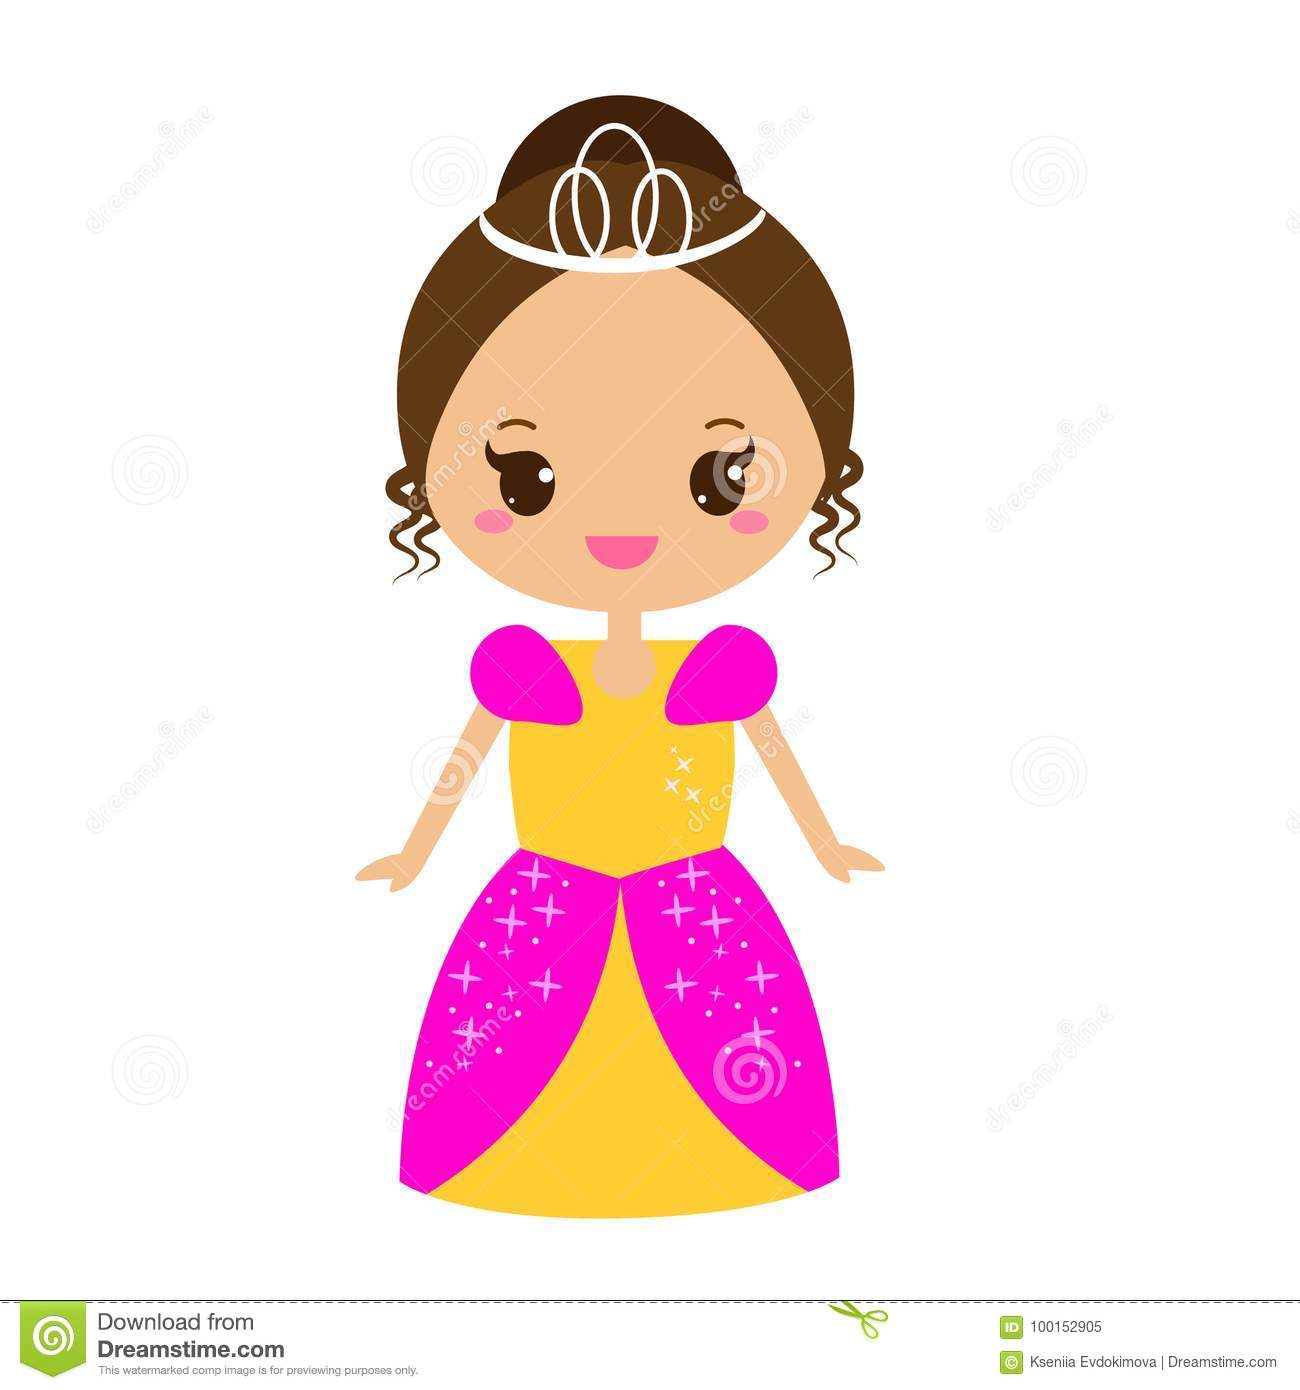 Princess Crown Cartoon Stock Illustrations 14 953 Princess Crown Cartoon Stock Illustrations Vectors Clipart Dreamstime Find the perfect cartoon princess crown stock illustrations from getty images. https www dreamstime com cute kawaii fairy tale princess long dress crown beautiful girl queen costume cartoon style vector illustration clip art image100152905